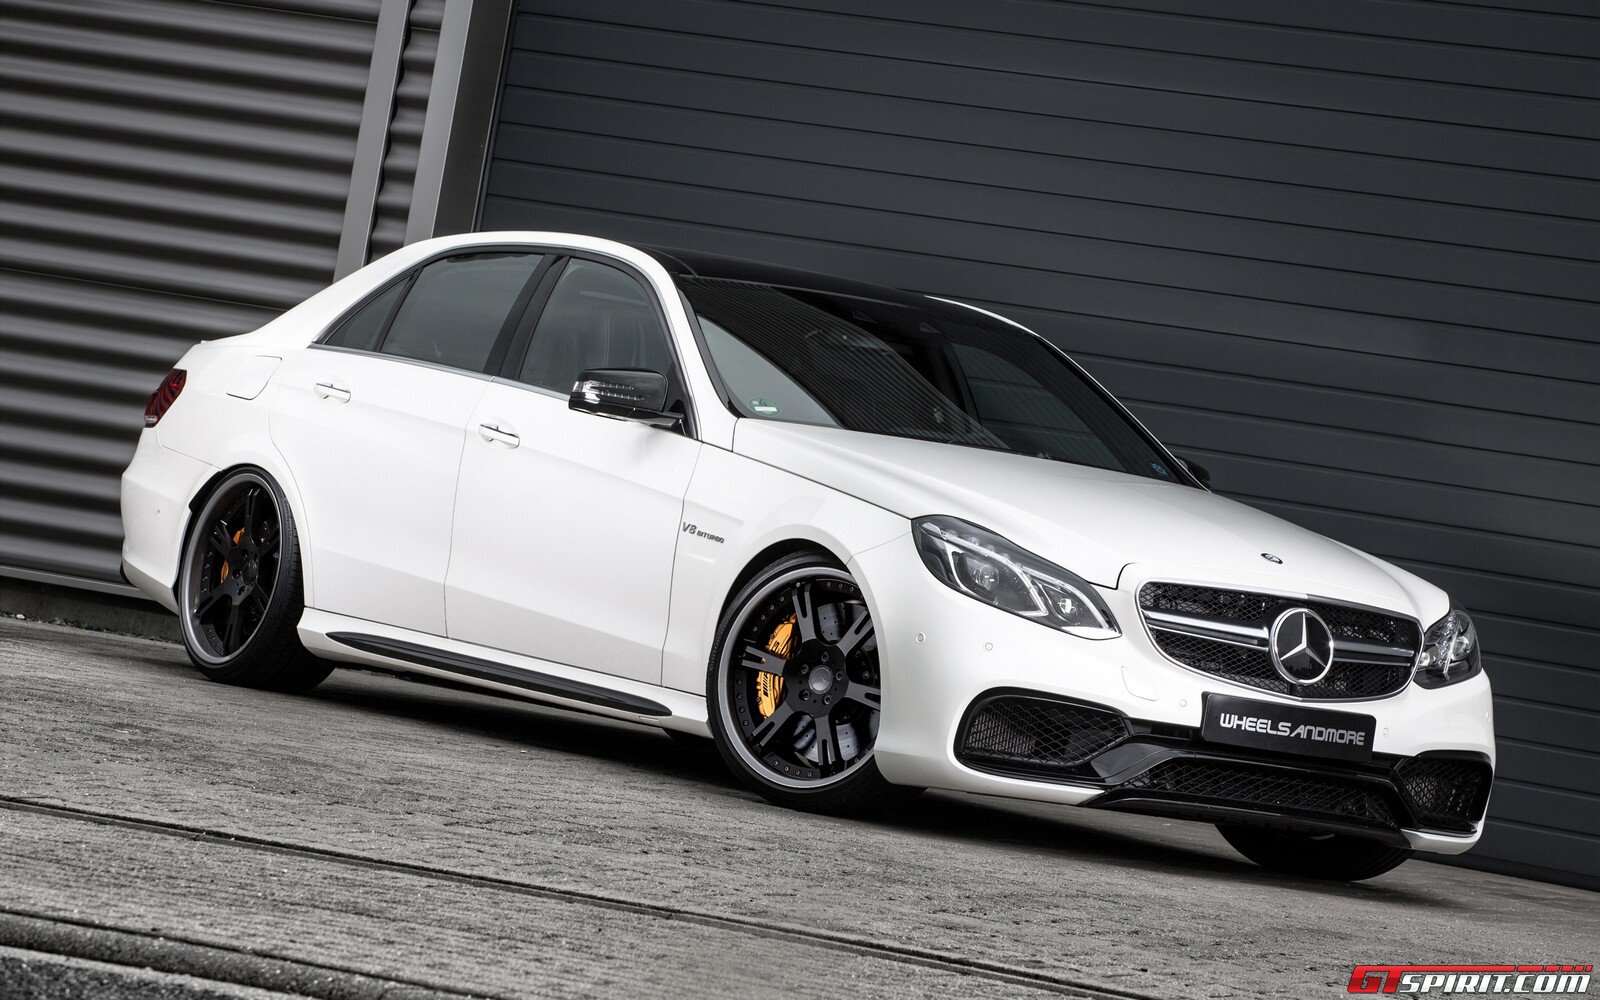 Official 2014 Mercedes Benz Cla250 besides 566375 Spy Shots 2017 Mercedes Benz E Class together with New Mercedes E Class Coupe Revealed Two Doors For 2017 Pictures Details Info in addition Watch further Watch. on 2013 mercedes benz e350 sport sedan